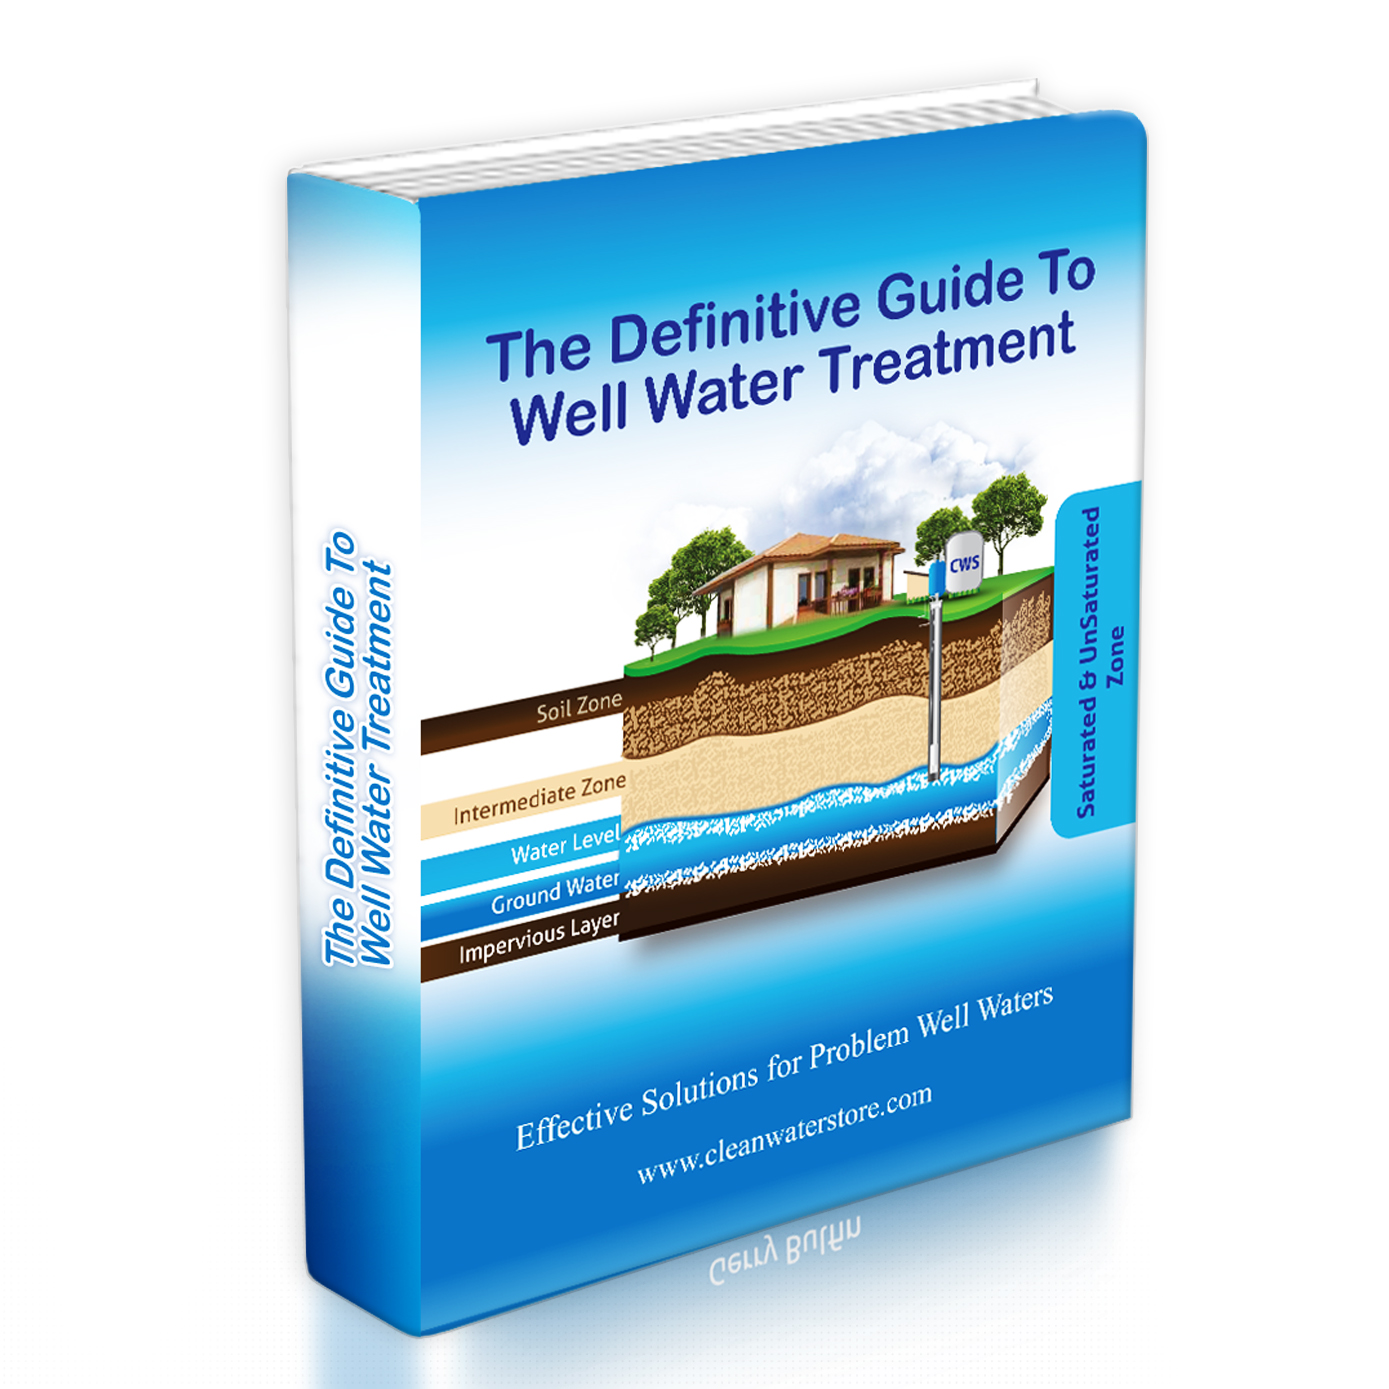 The Definitive Guide to Well Water Treatment